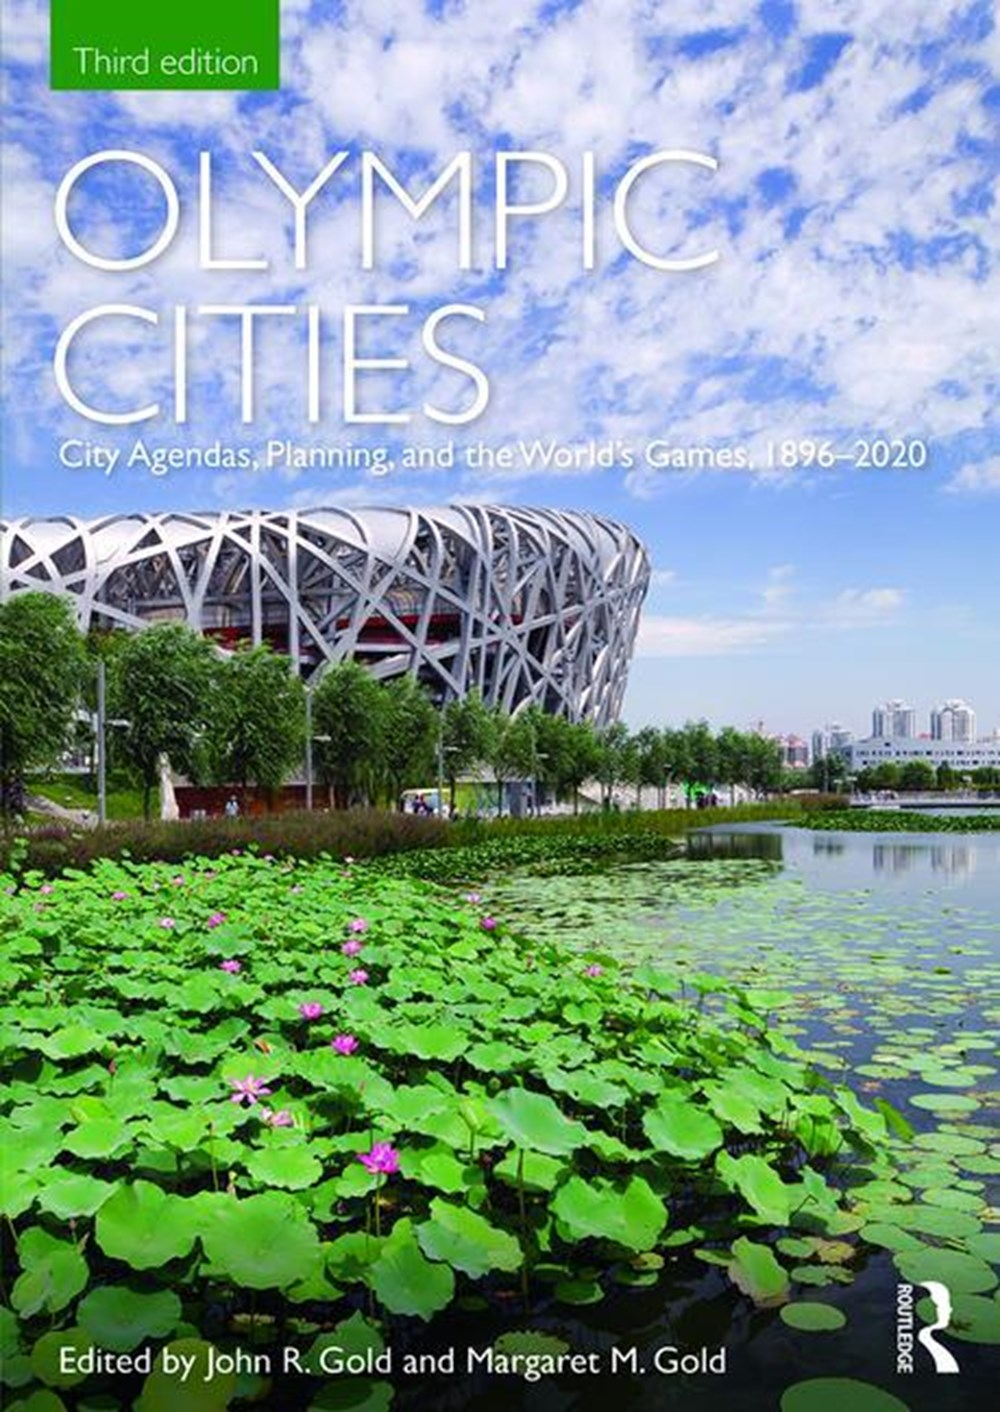 Olympic Cities City Agendas, Planning, and the World's Games, 1896 - 2020